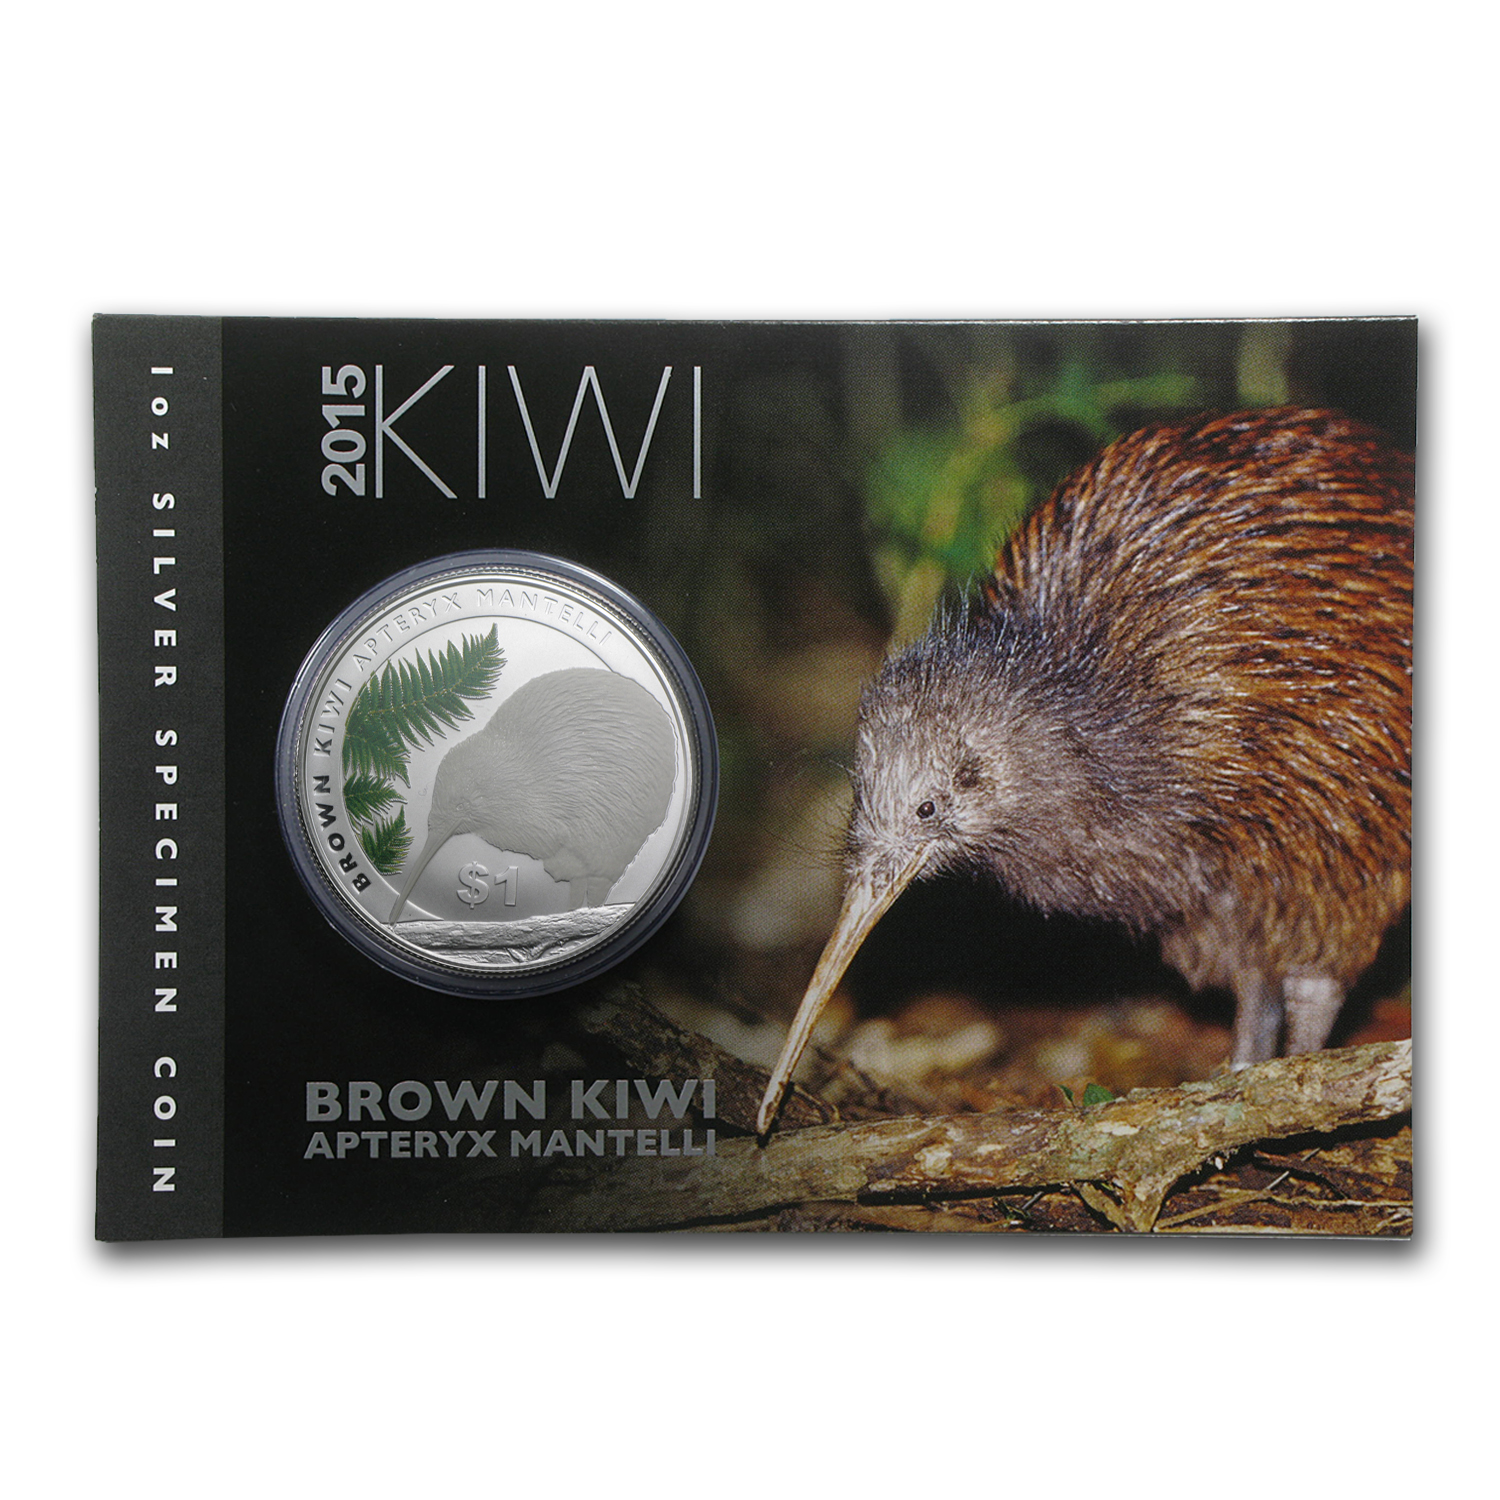 2015 New Zealand 1 oz Silver Treasures $1 Kiwi Specimen